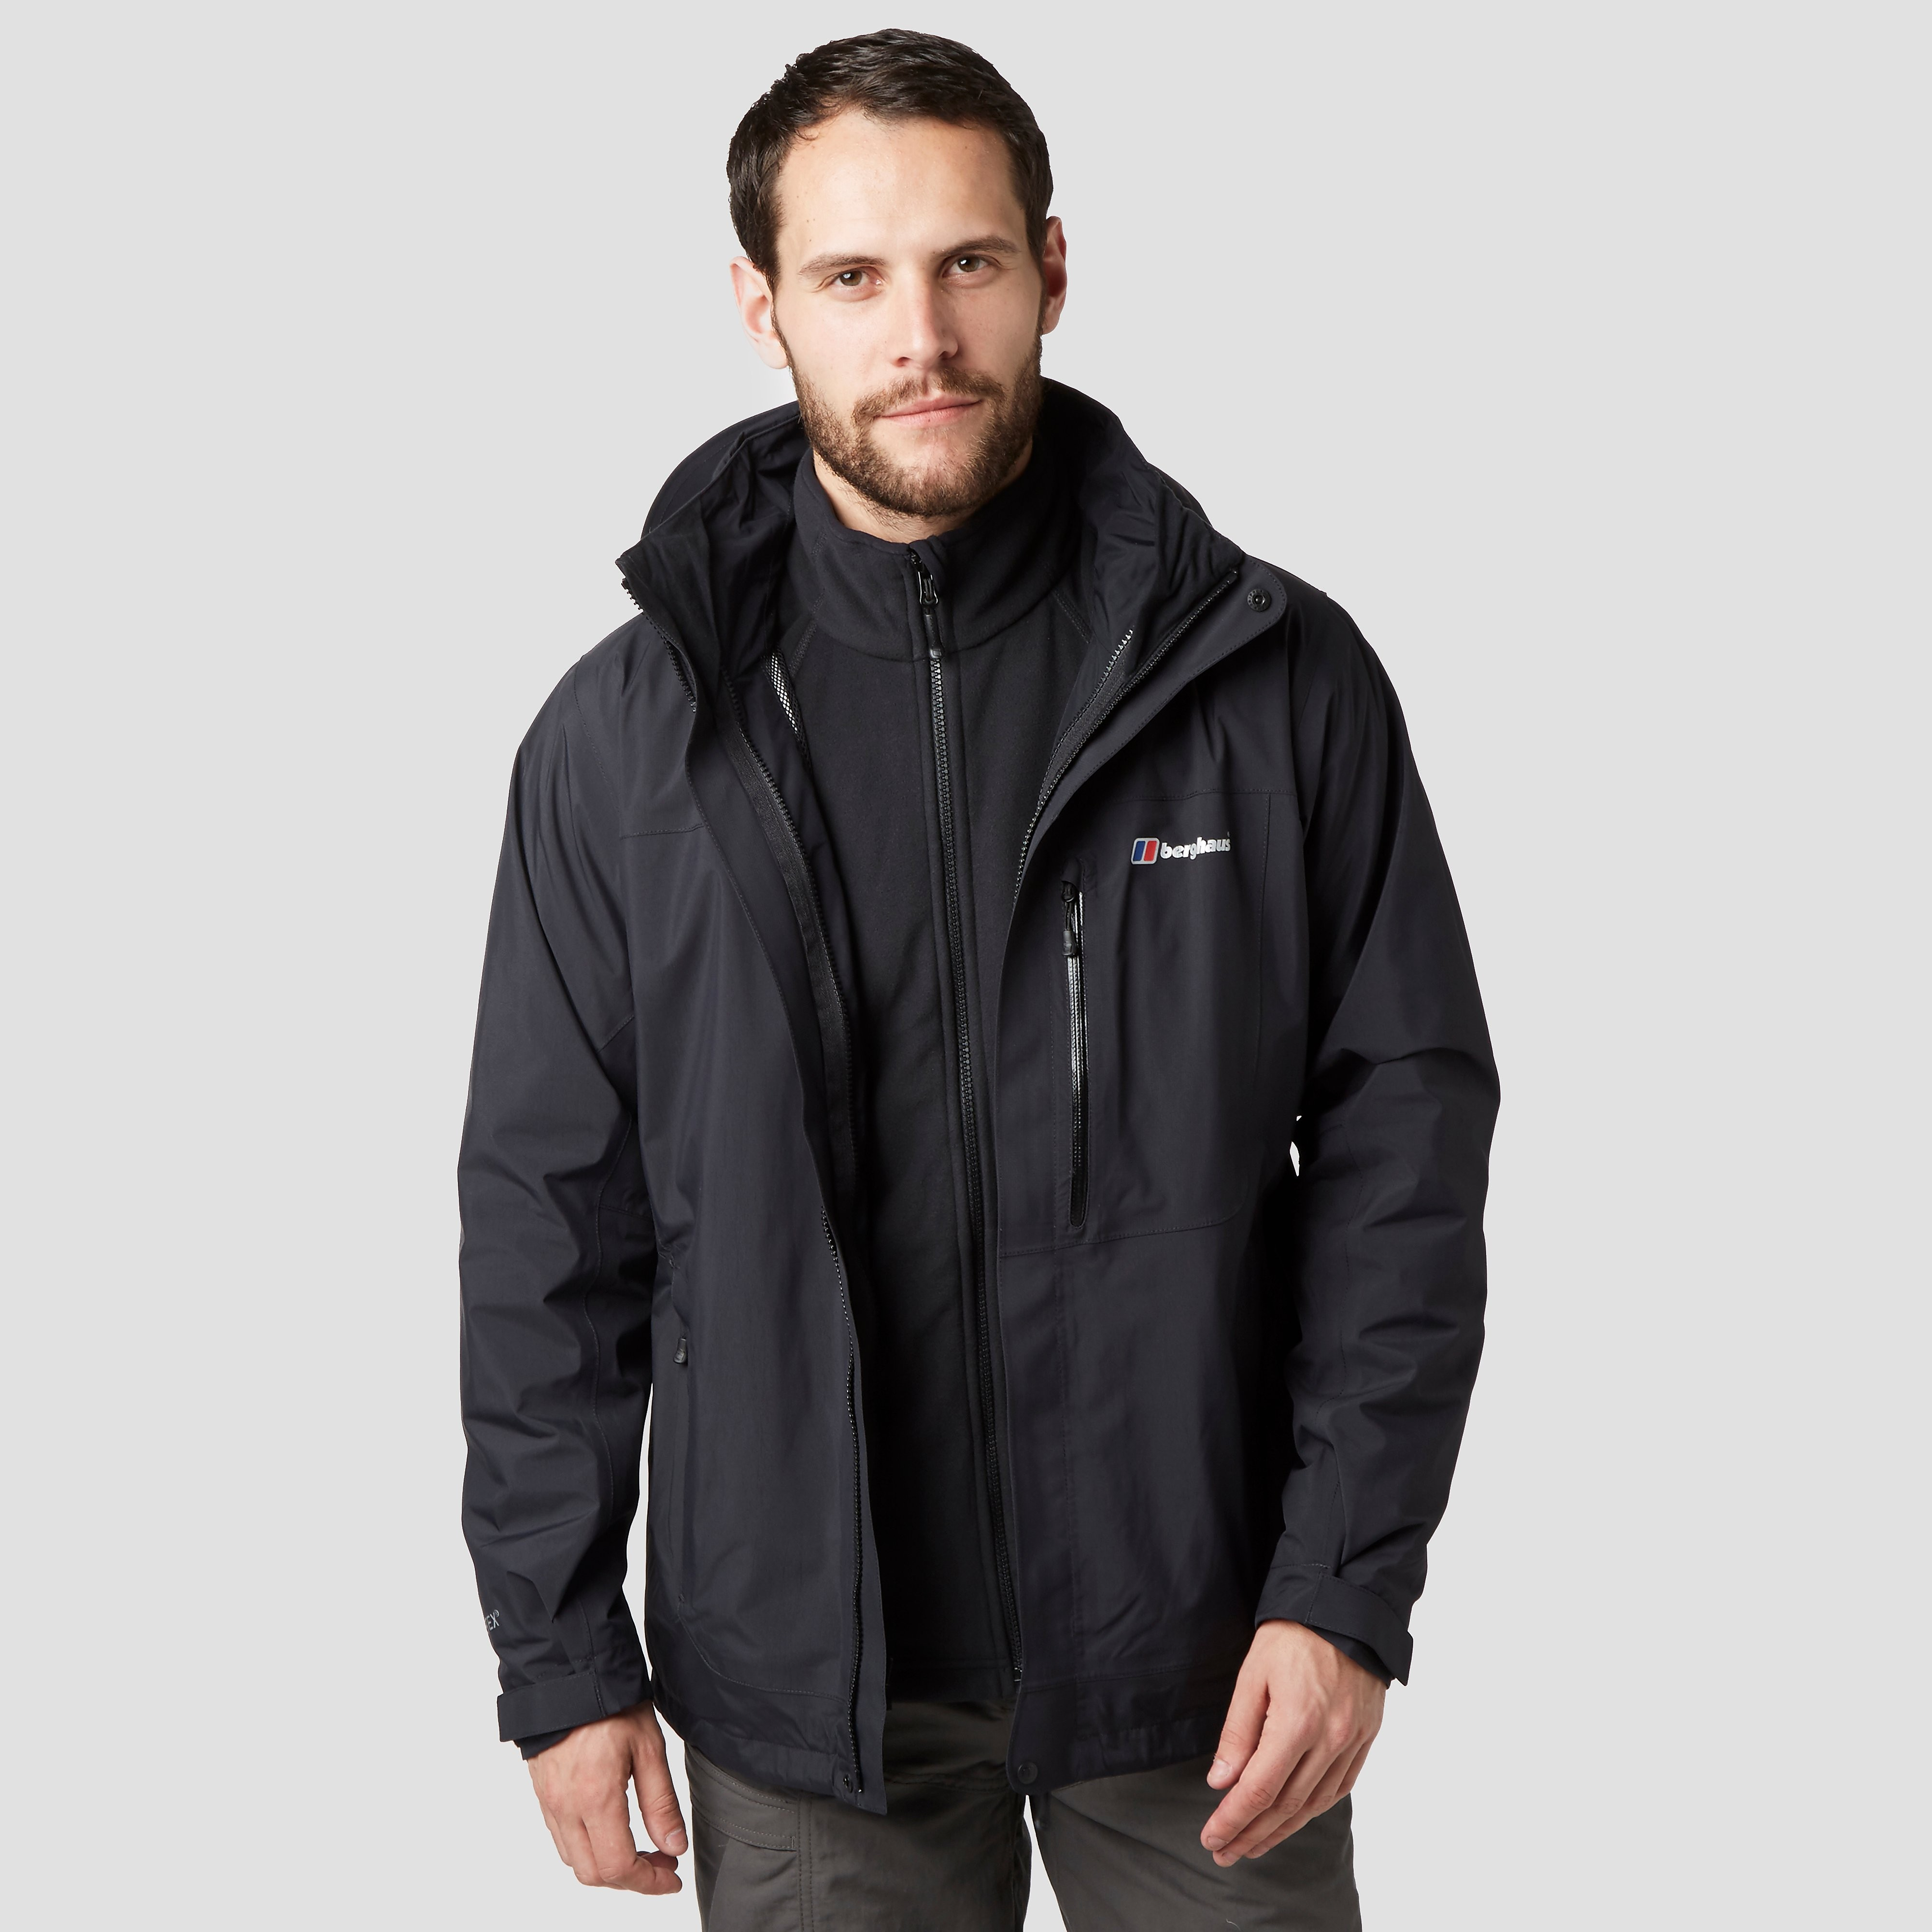 Berghaus Men's Arisdale 3 in 1 GORE-TEX Jacket